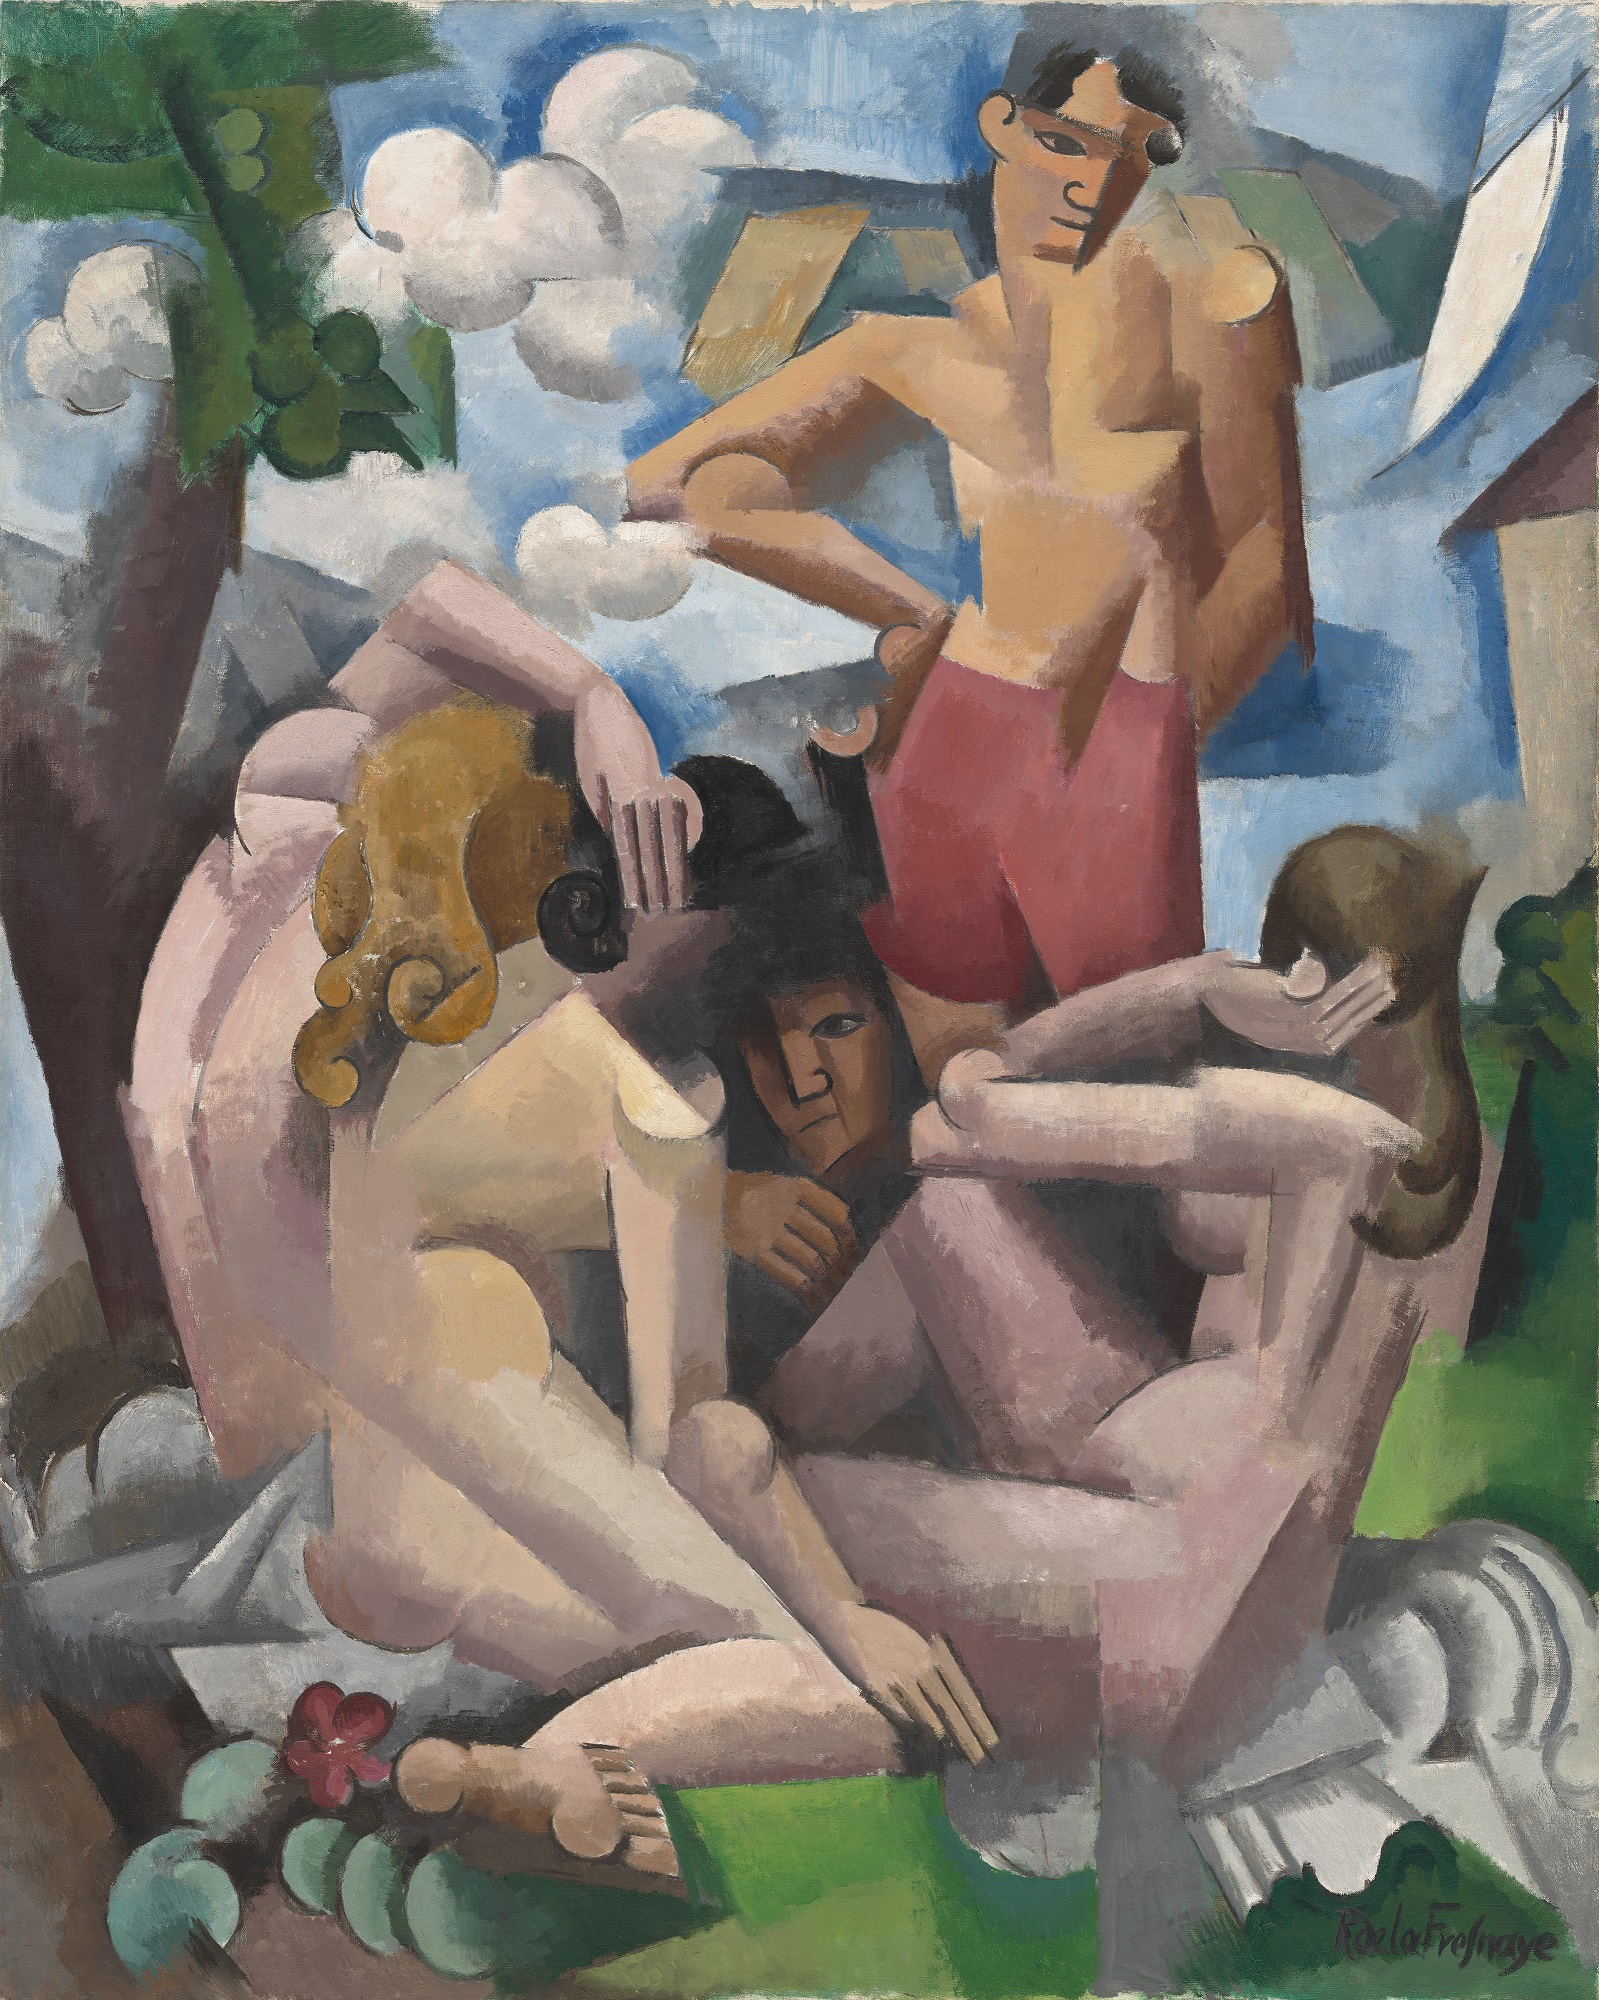 Roger-Noël-François André de La Fresnaye | Le Baigneurs | 1912 |  © Washington, National Gallery of Art